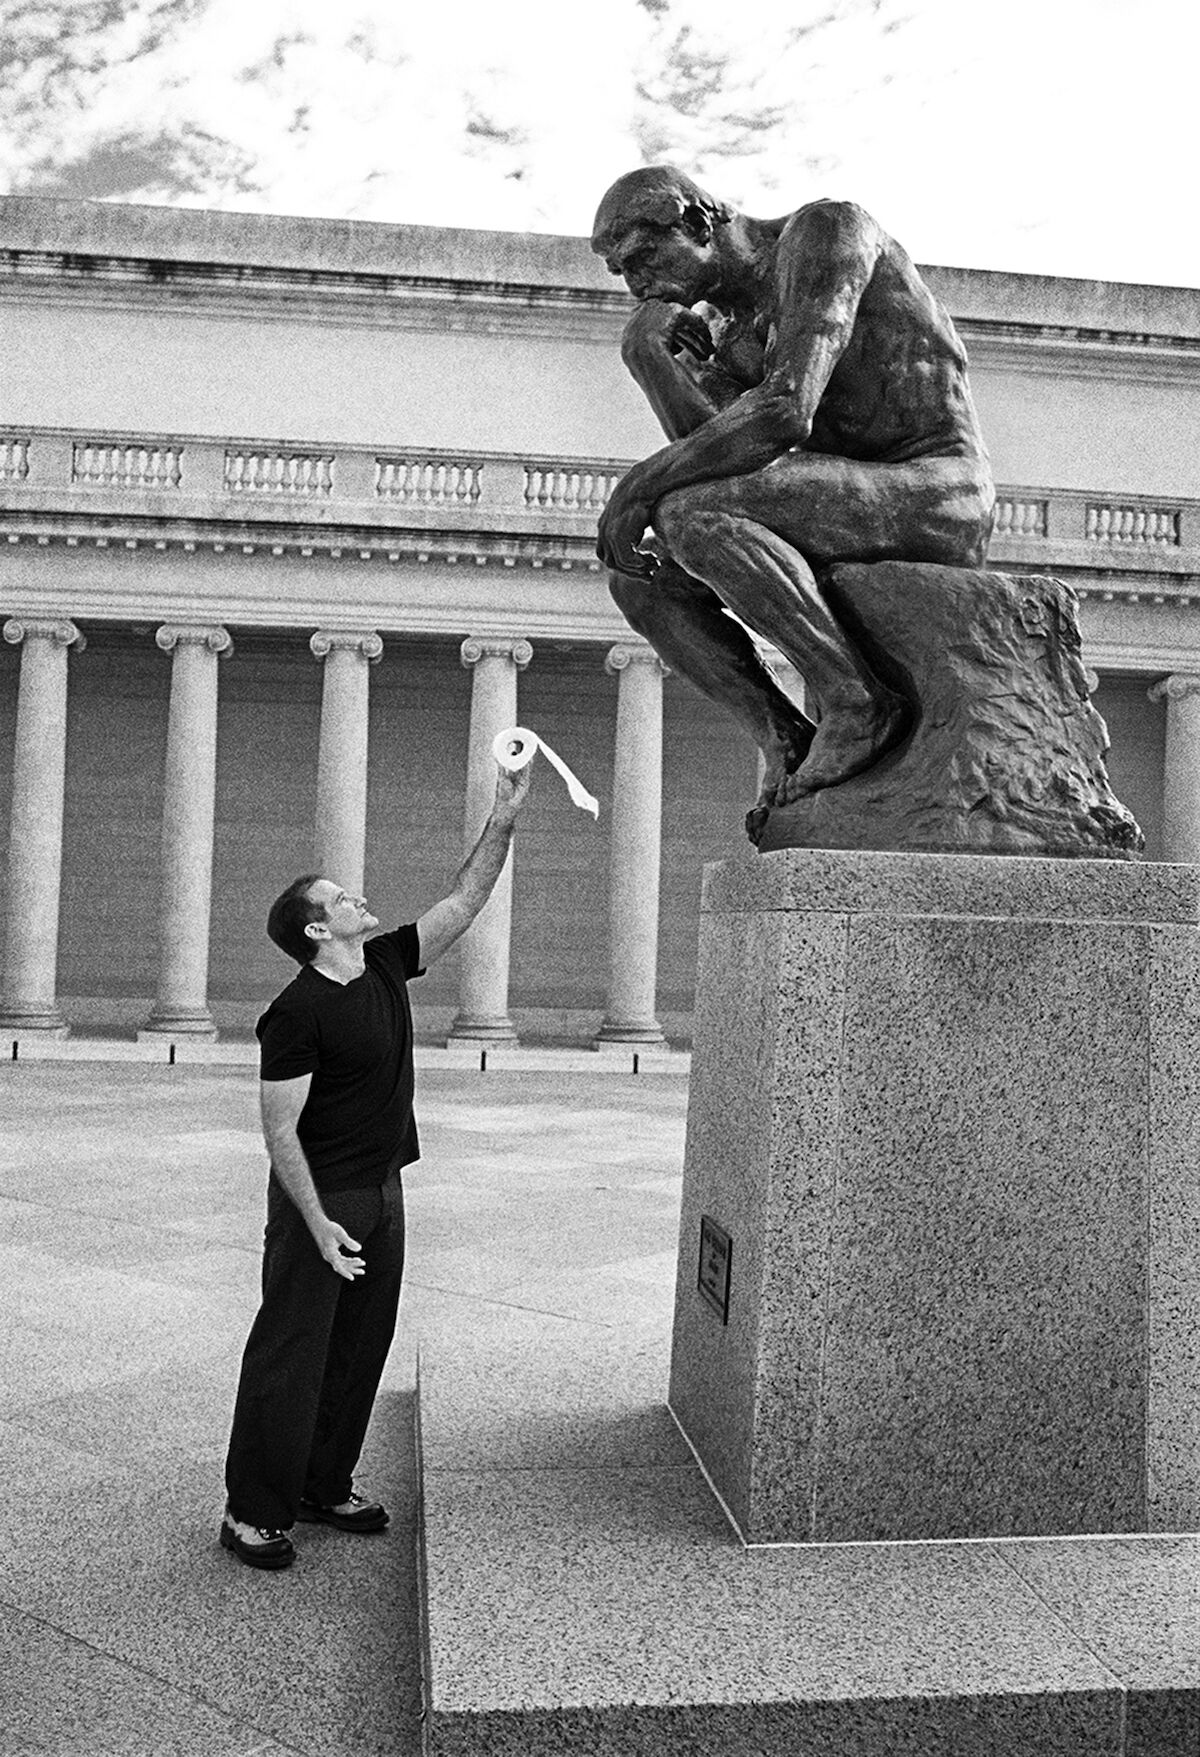 Robin Williams with Auguste Rodin's The Thinker. Photo by and copyright Arthur Grace, courtesy Sotheby's.